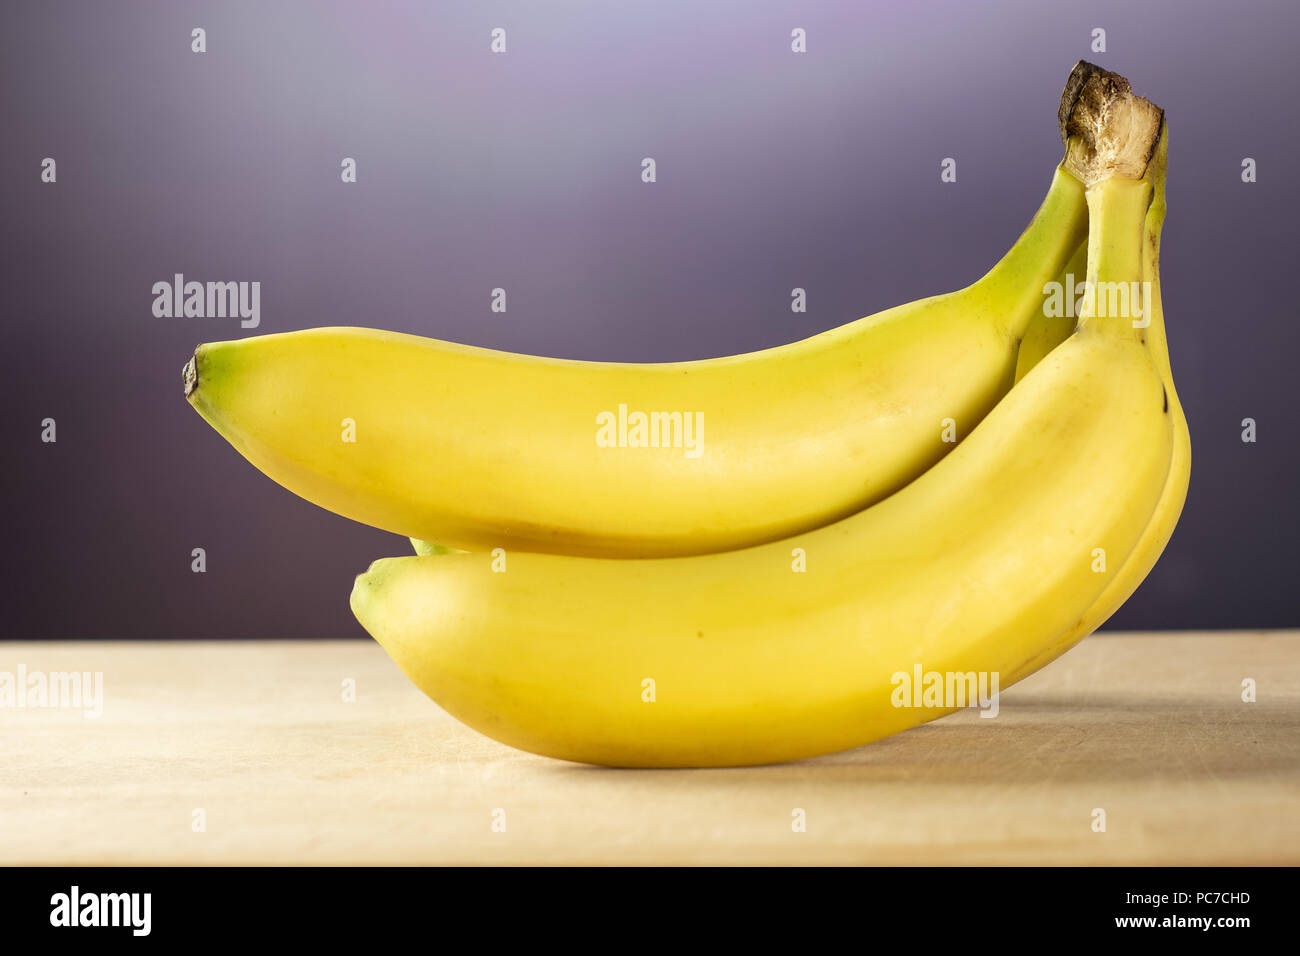 Five Photographs Of Banana In Seach Of >> Group Of Five Whole Fresh Yellow Banana One Cluster With Grey